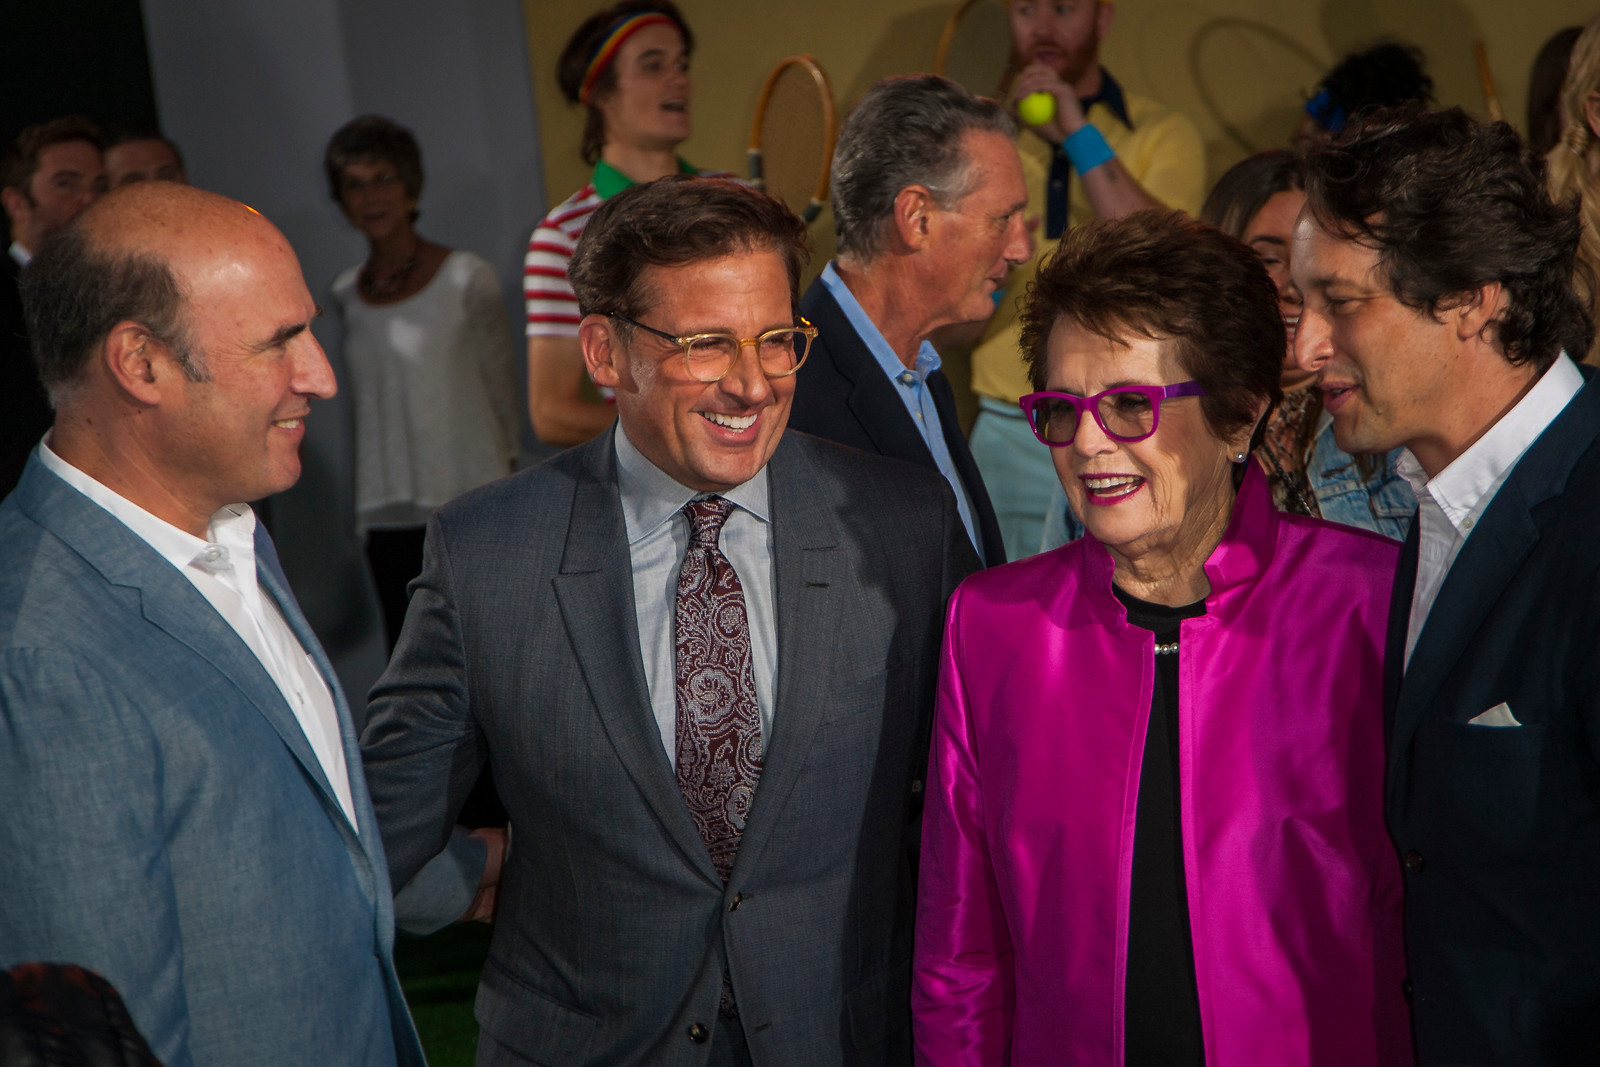 WESTWOOD, CA - SEPTEMBER 16: (L-R) Matthew Greenfield, Steve Carell, Billie Jean King and  David Greenbaum attend the premiere of Fox Searchlight Pictures' 'Battle Of The Sexes' at Regency Village Theatre on Saturday, September 16, 2017 in Westwood, California. (Photo by Tom Sorensen/Moovieboy Pictures)